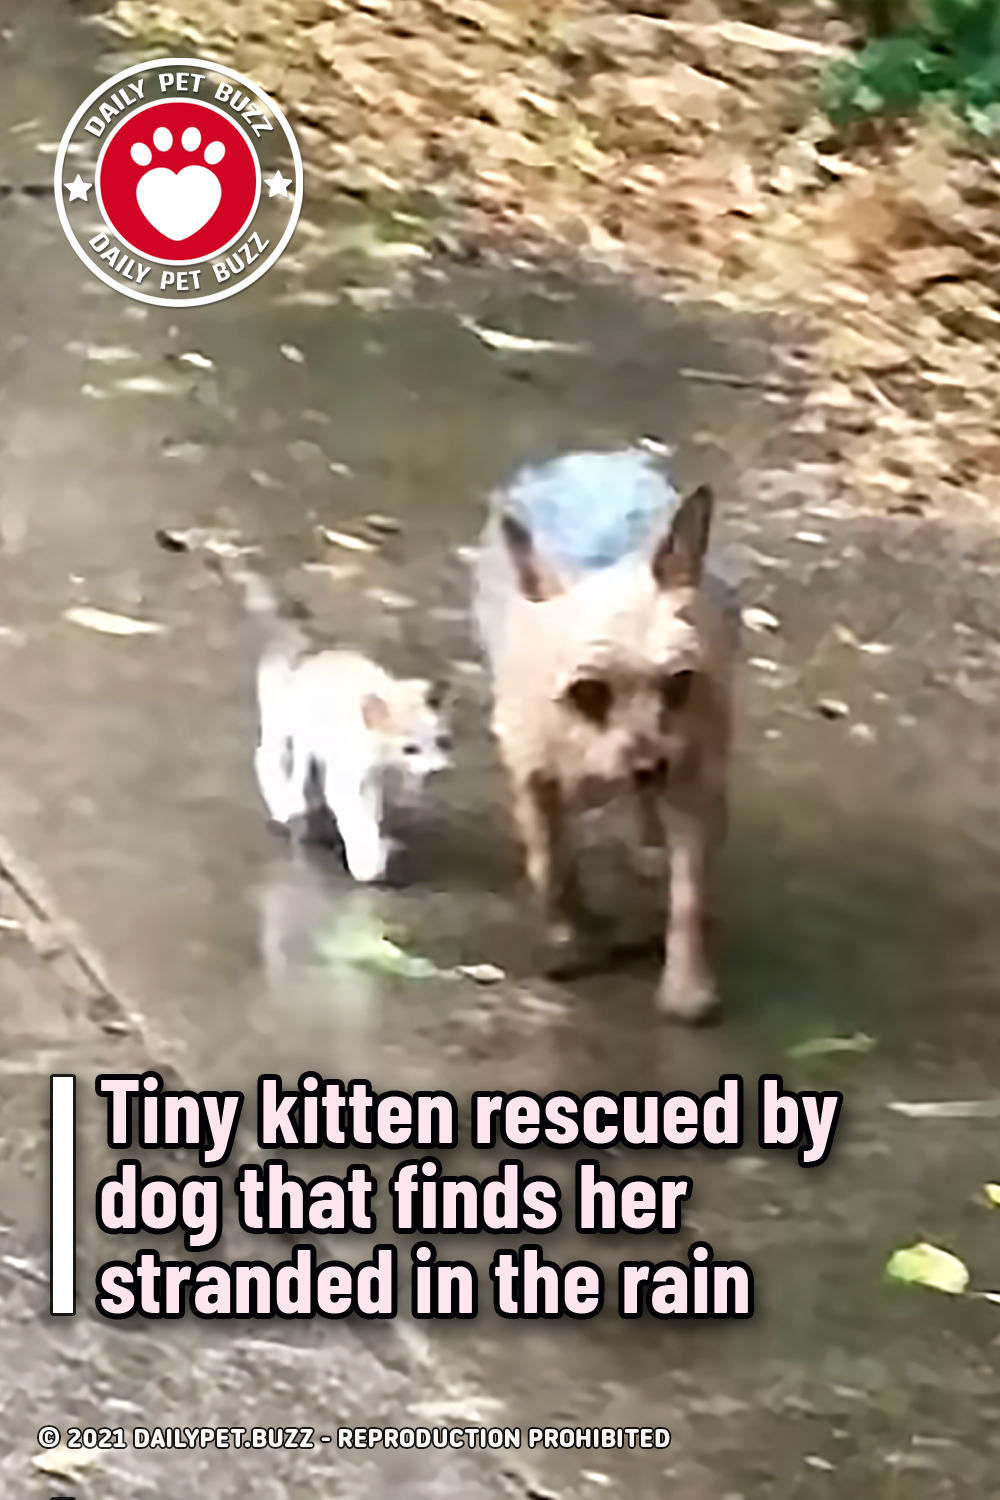 Tiny kitten rescued by dog that finds her stranded in the rain